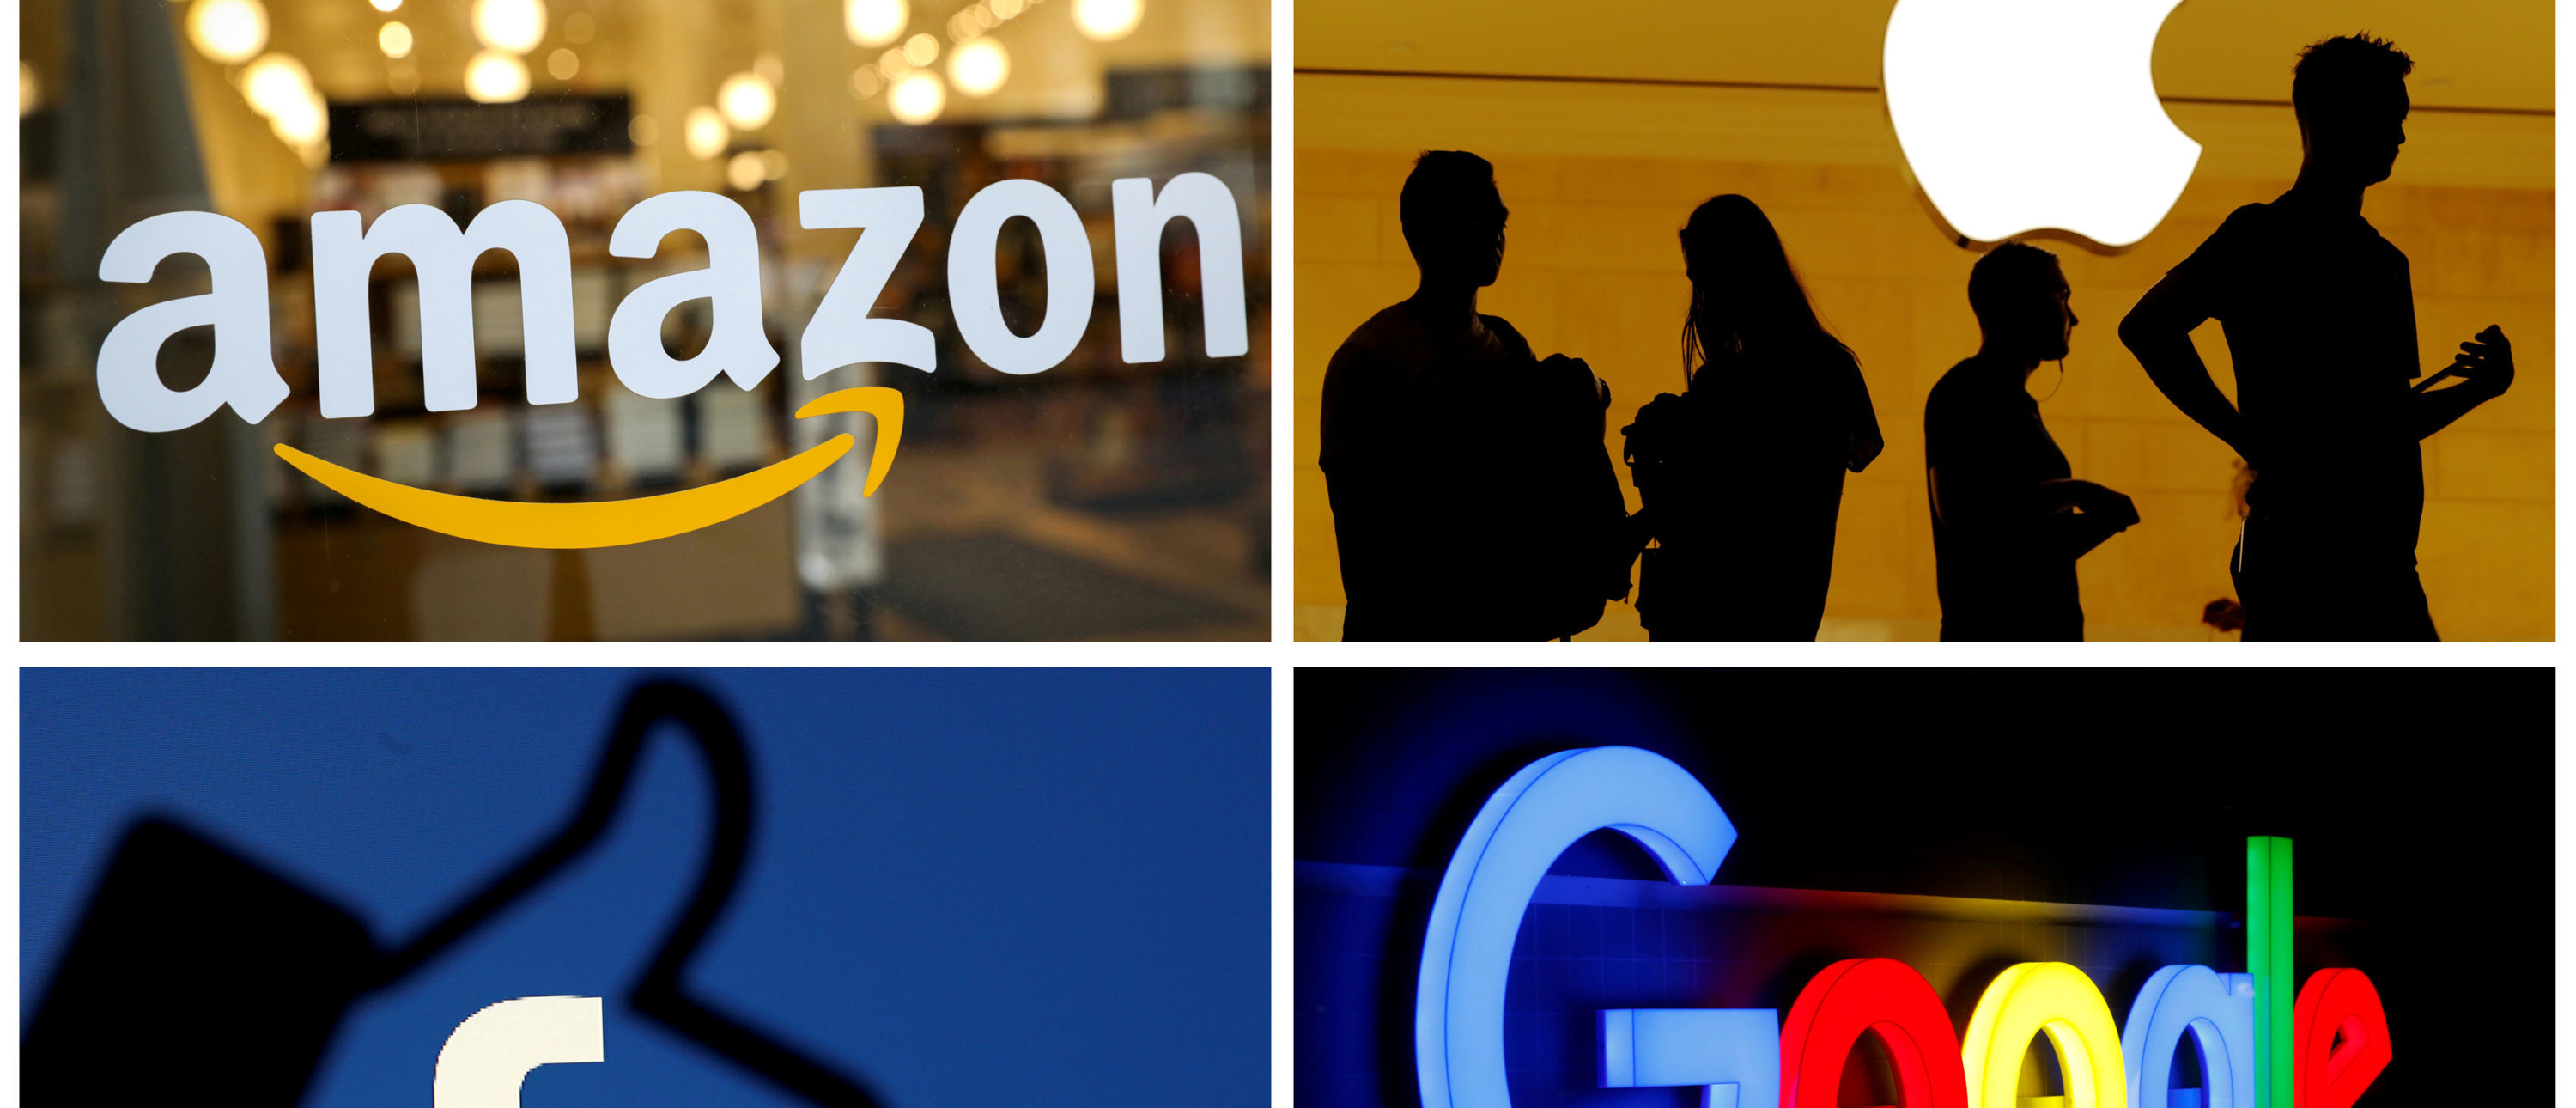 The logos of Amazon, Apple, Facebook and Google are seen in a combination photo from Reuters files. REUTERS/File Photos/File Photo